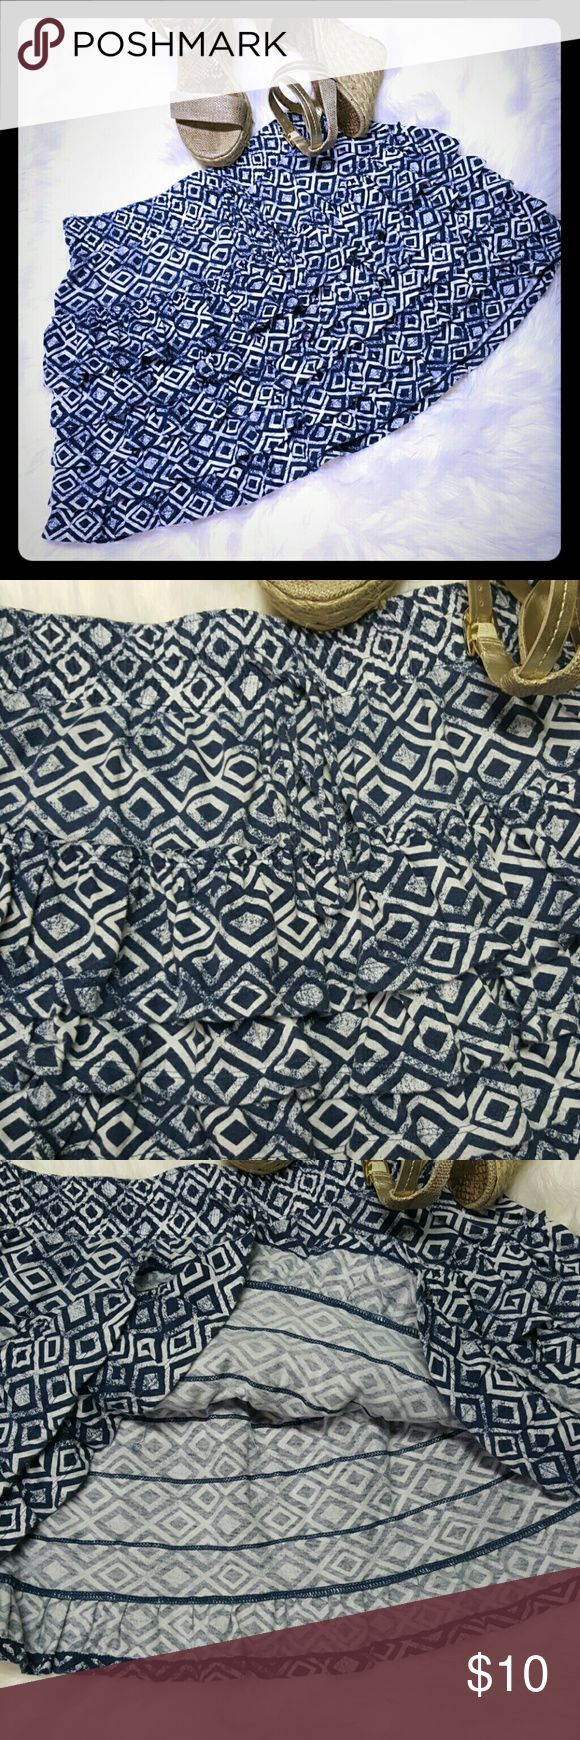 Aeropostale ruffled mini skirt Blue and white, diamond shaped geometric print. Cotton and polyester blend. Elastic waist with functional drawstring.  Makes a cute Summer skirt.  Unlined. EUC, no rips, stains. Aeropostale Skirts Mini